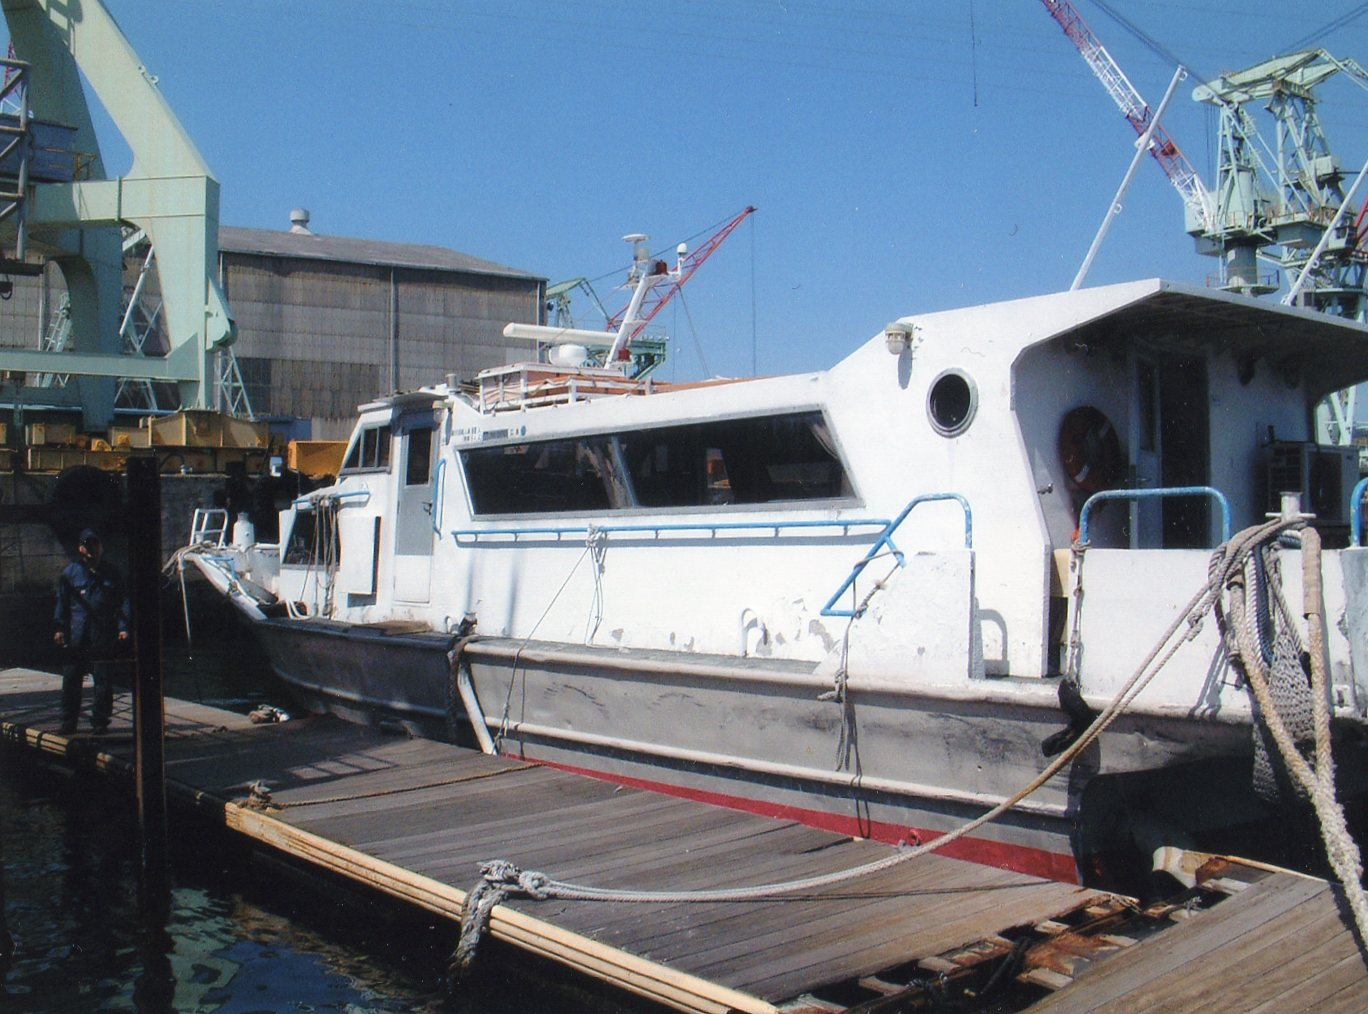 64 PAX Used Passenger Boat for sale